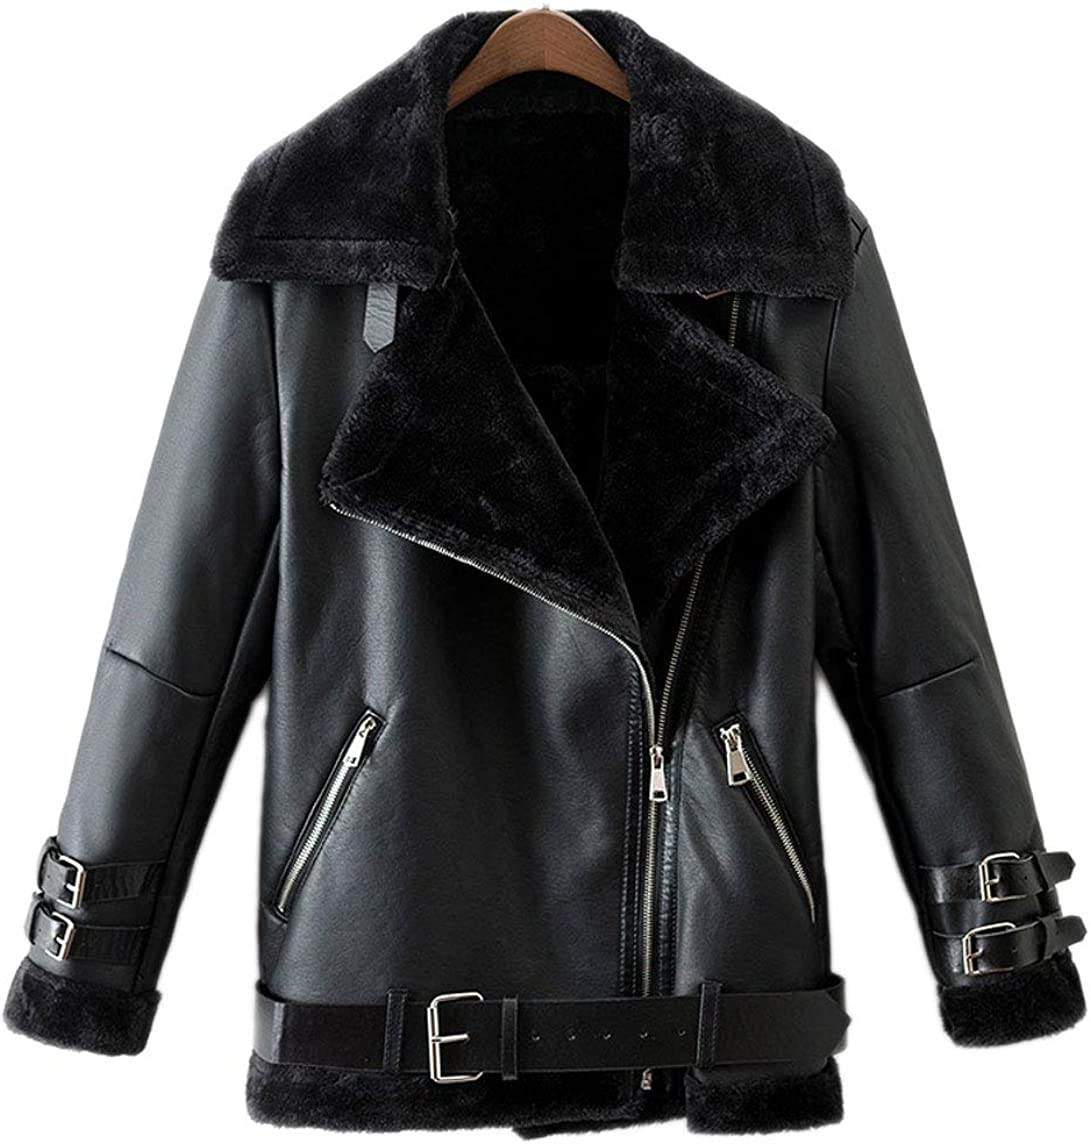 CHARTOU Women's PU Leather Quilted Moto Jacket Biker Tops Plush Lined Short Coat Outwear